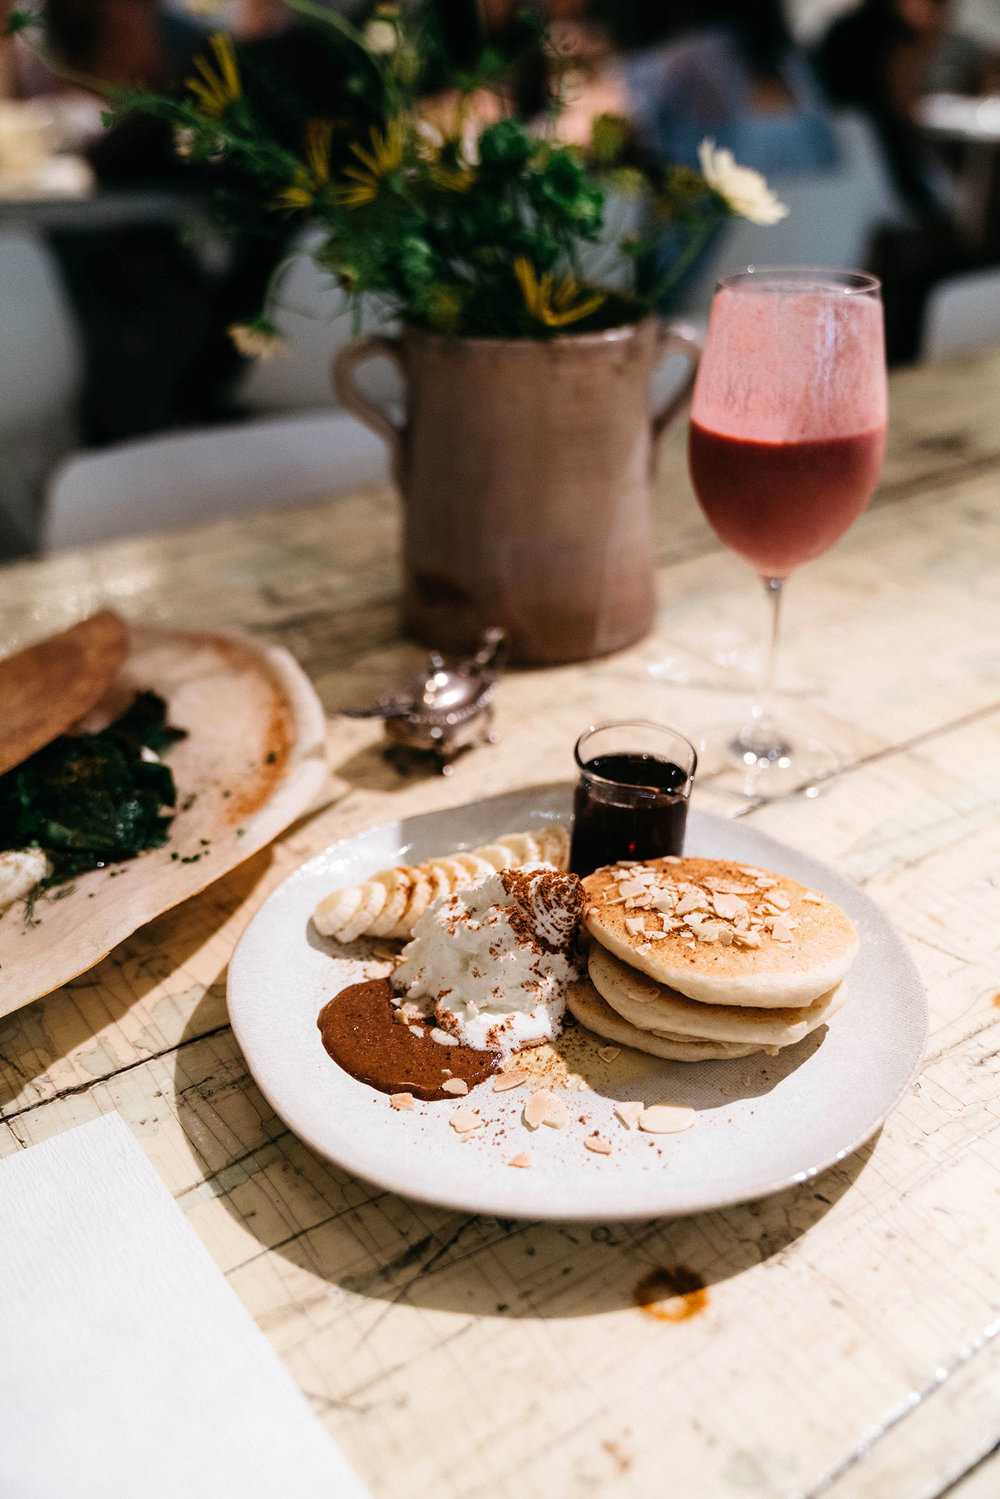 Egg dosa, gluten-free almond pancakes, and berry yogurt smoothie at abcV